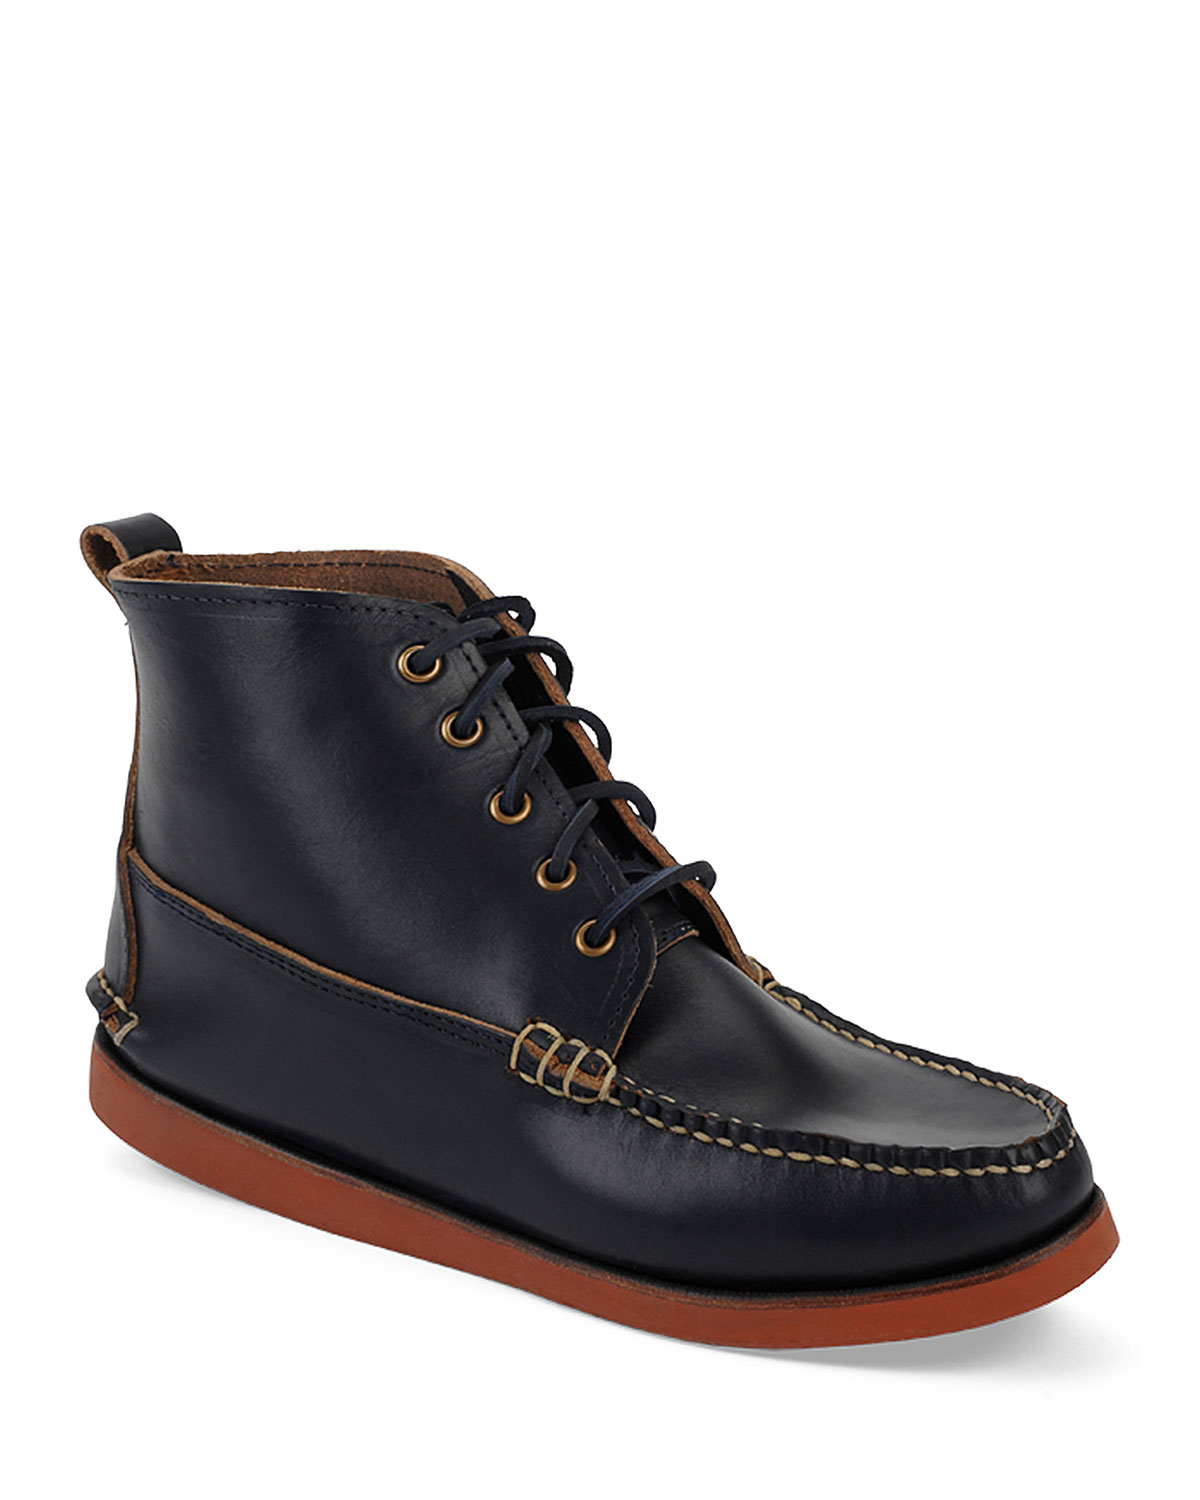 Seneca USA Camp Moc Chukka Boot, Navy